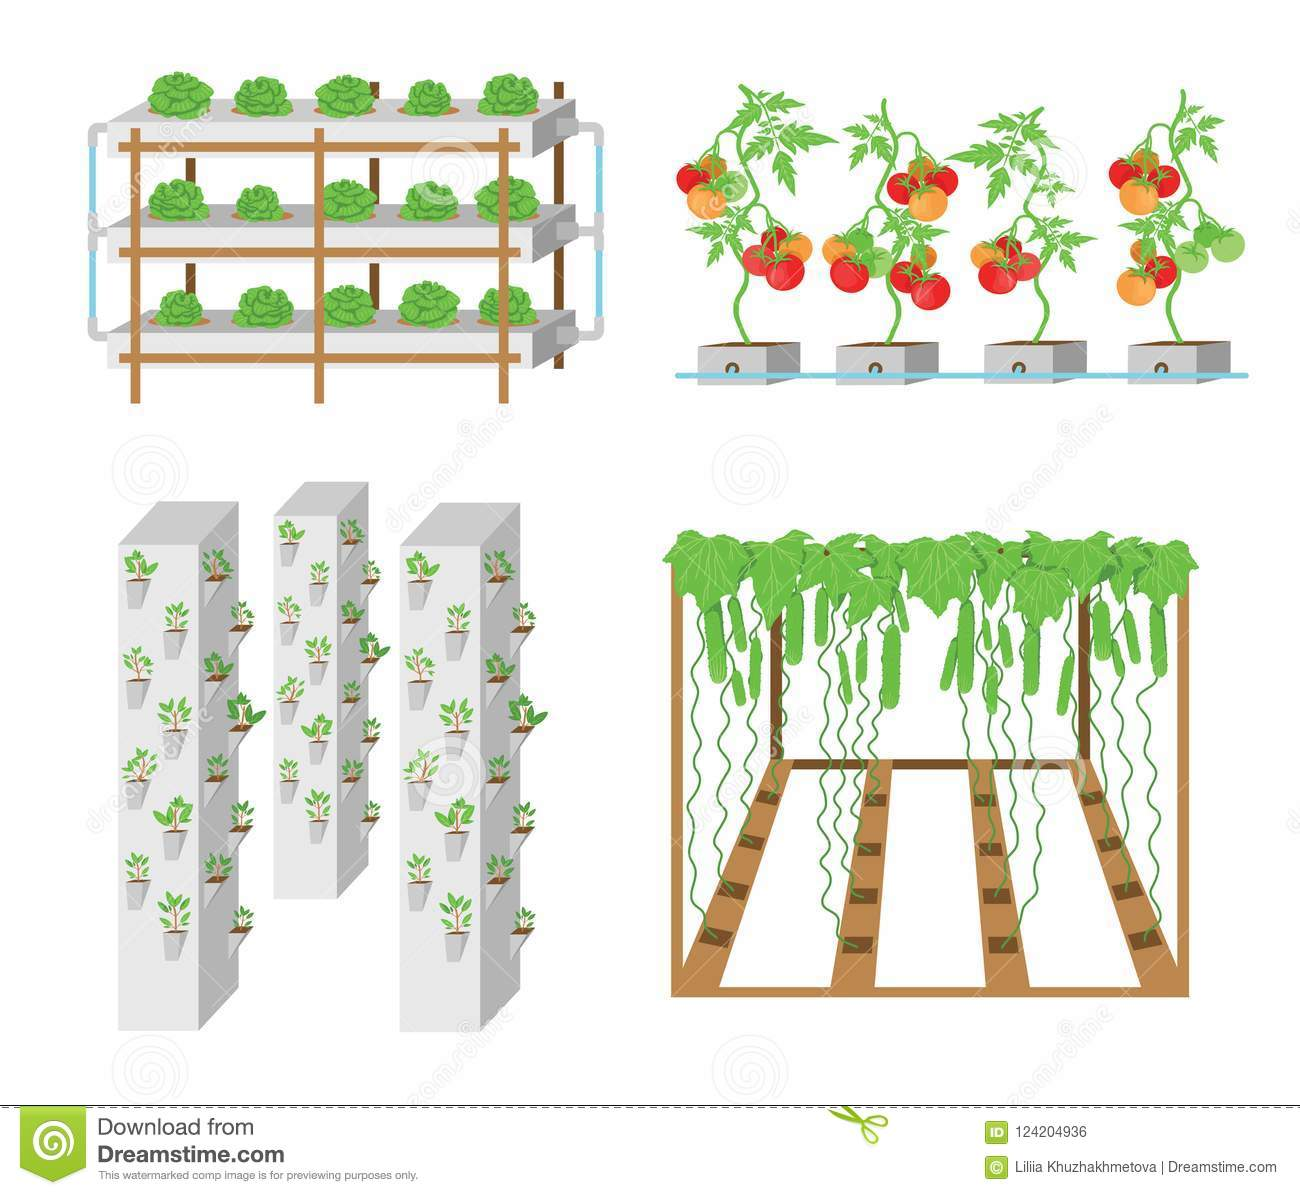 hight resolution of hydroponic vegetable growth system illustration